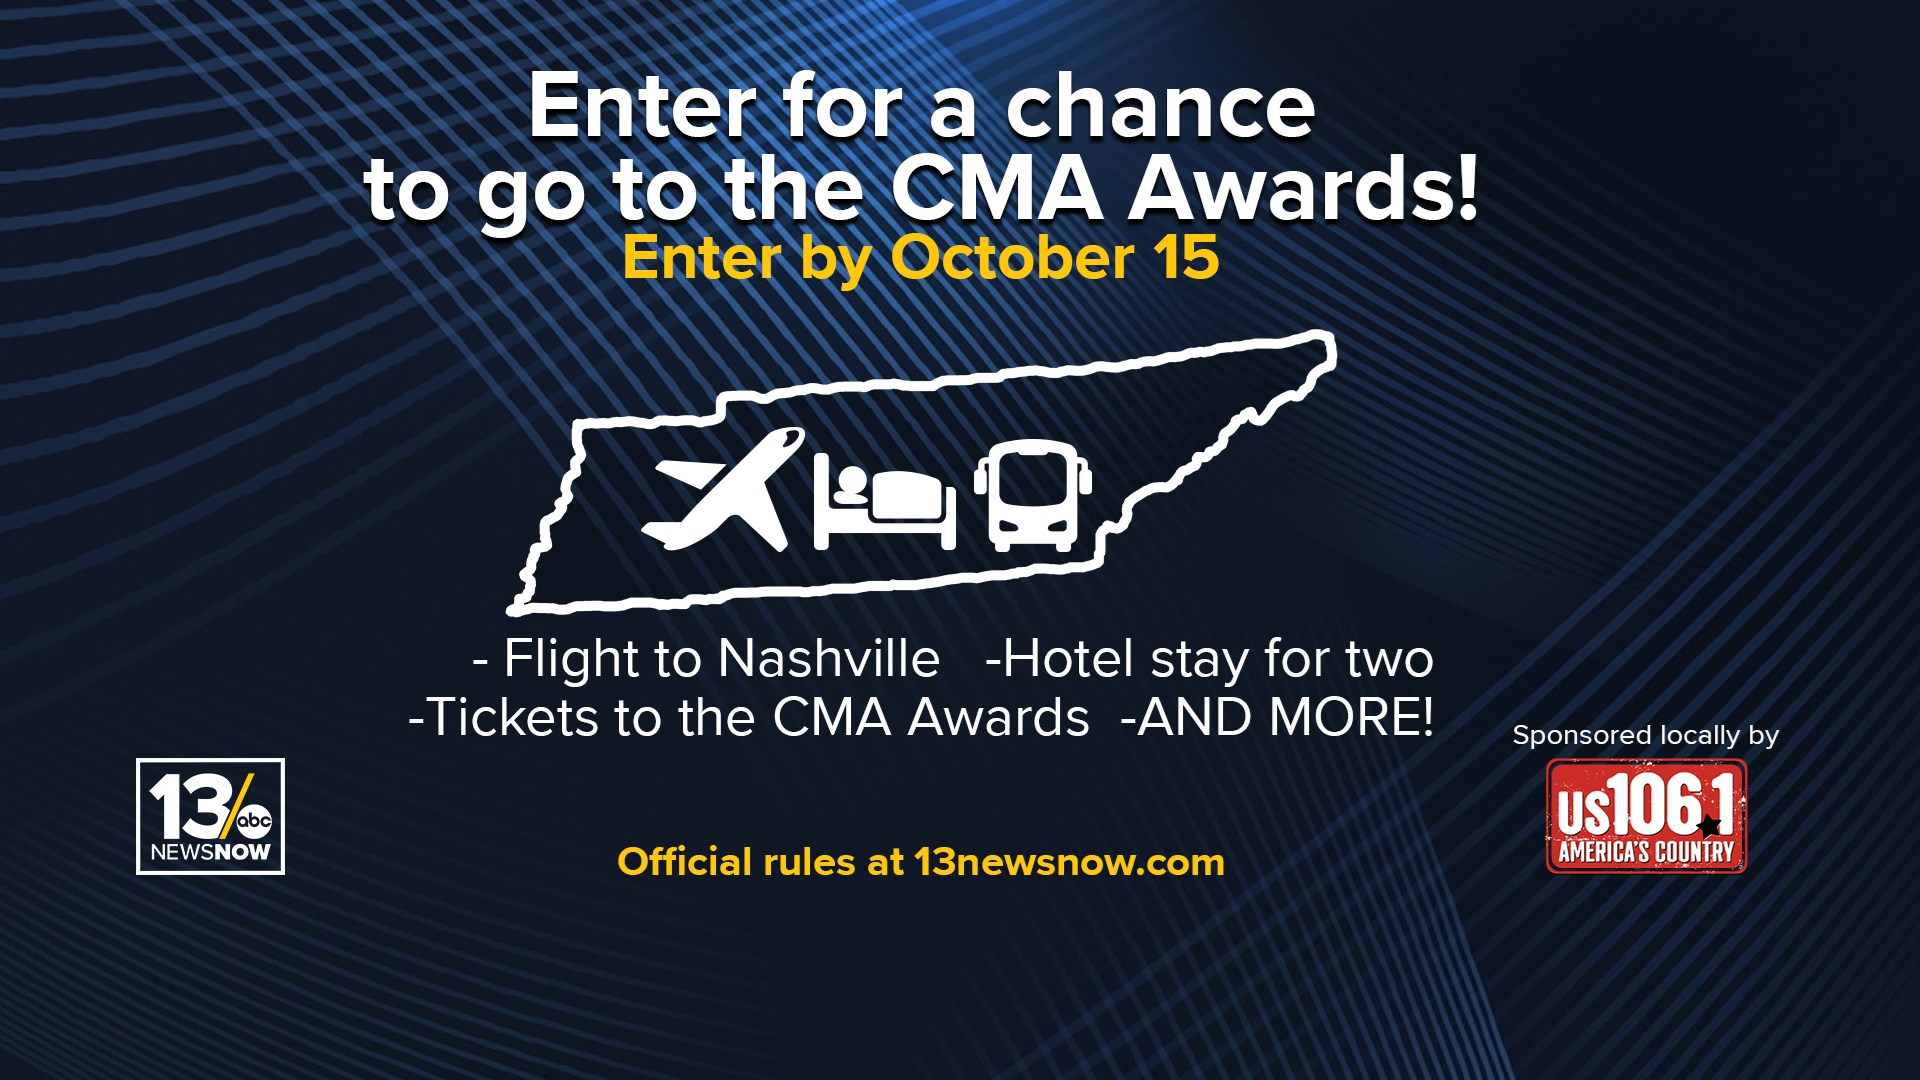 Visit nc sweepstakes closing